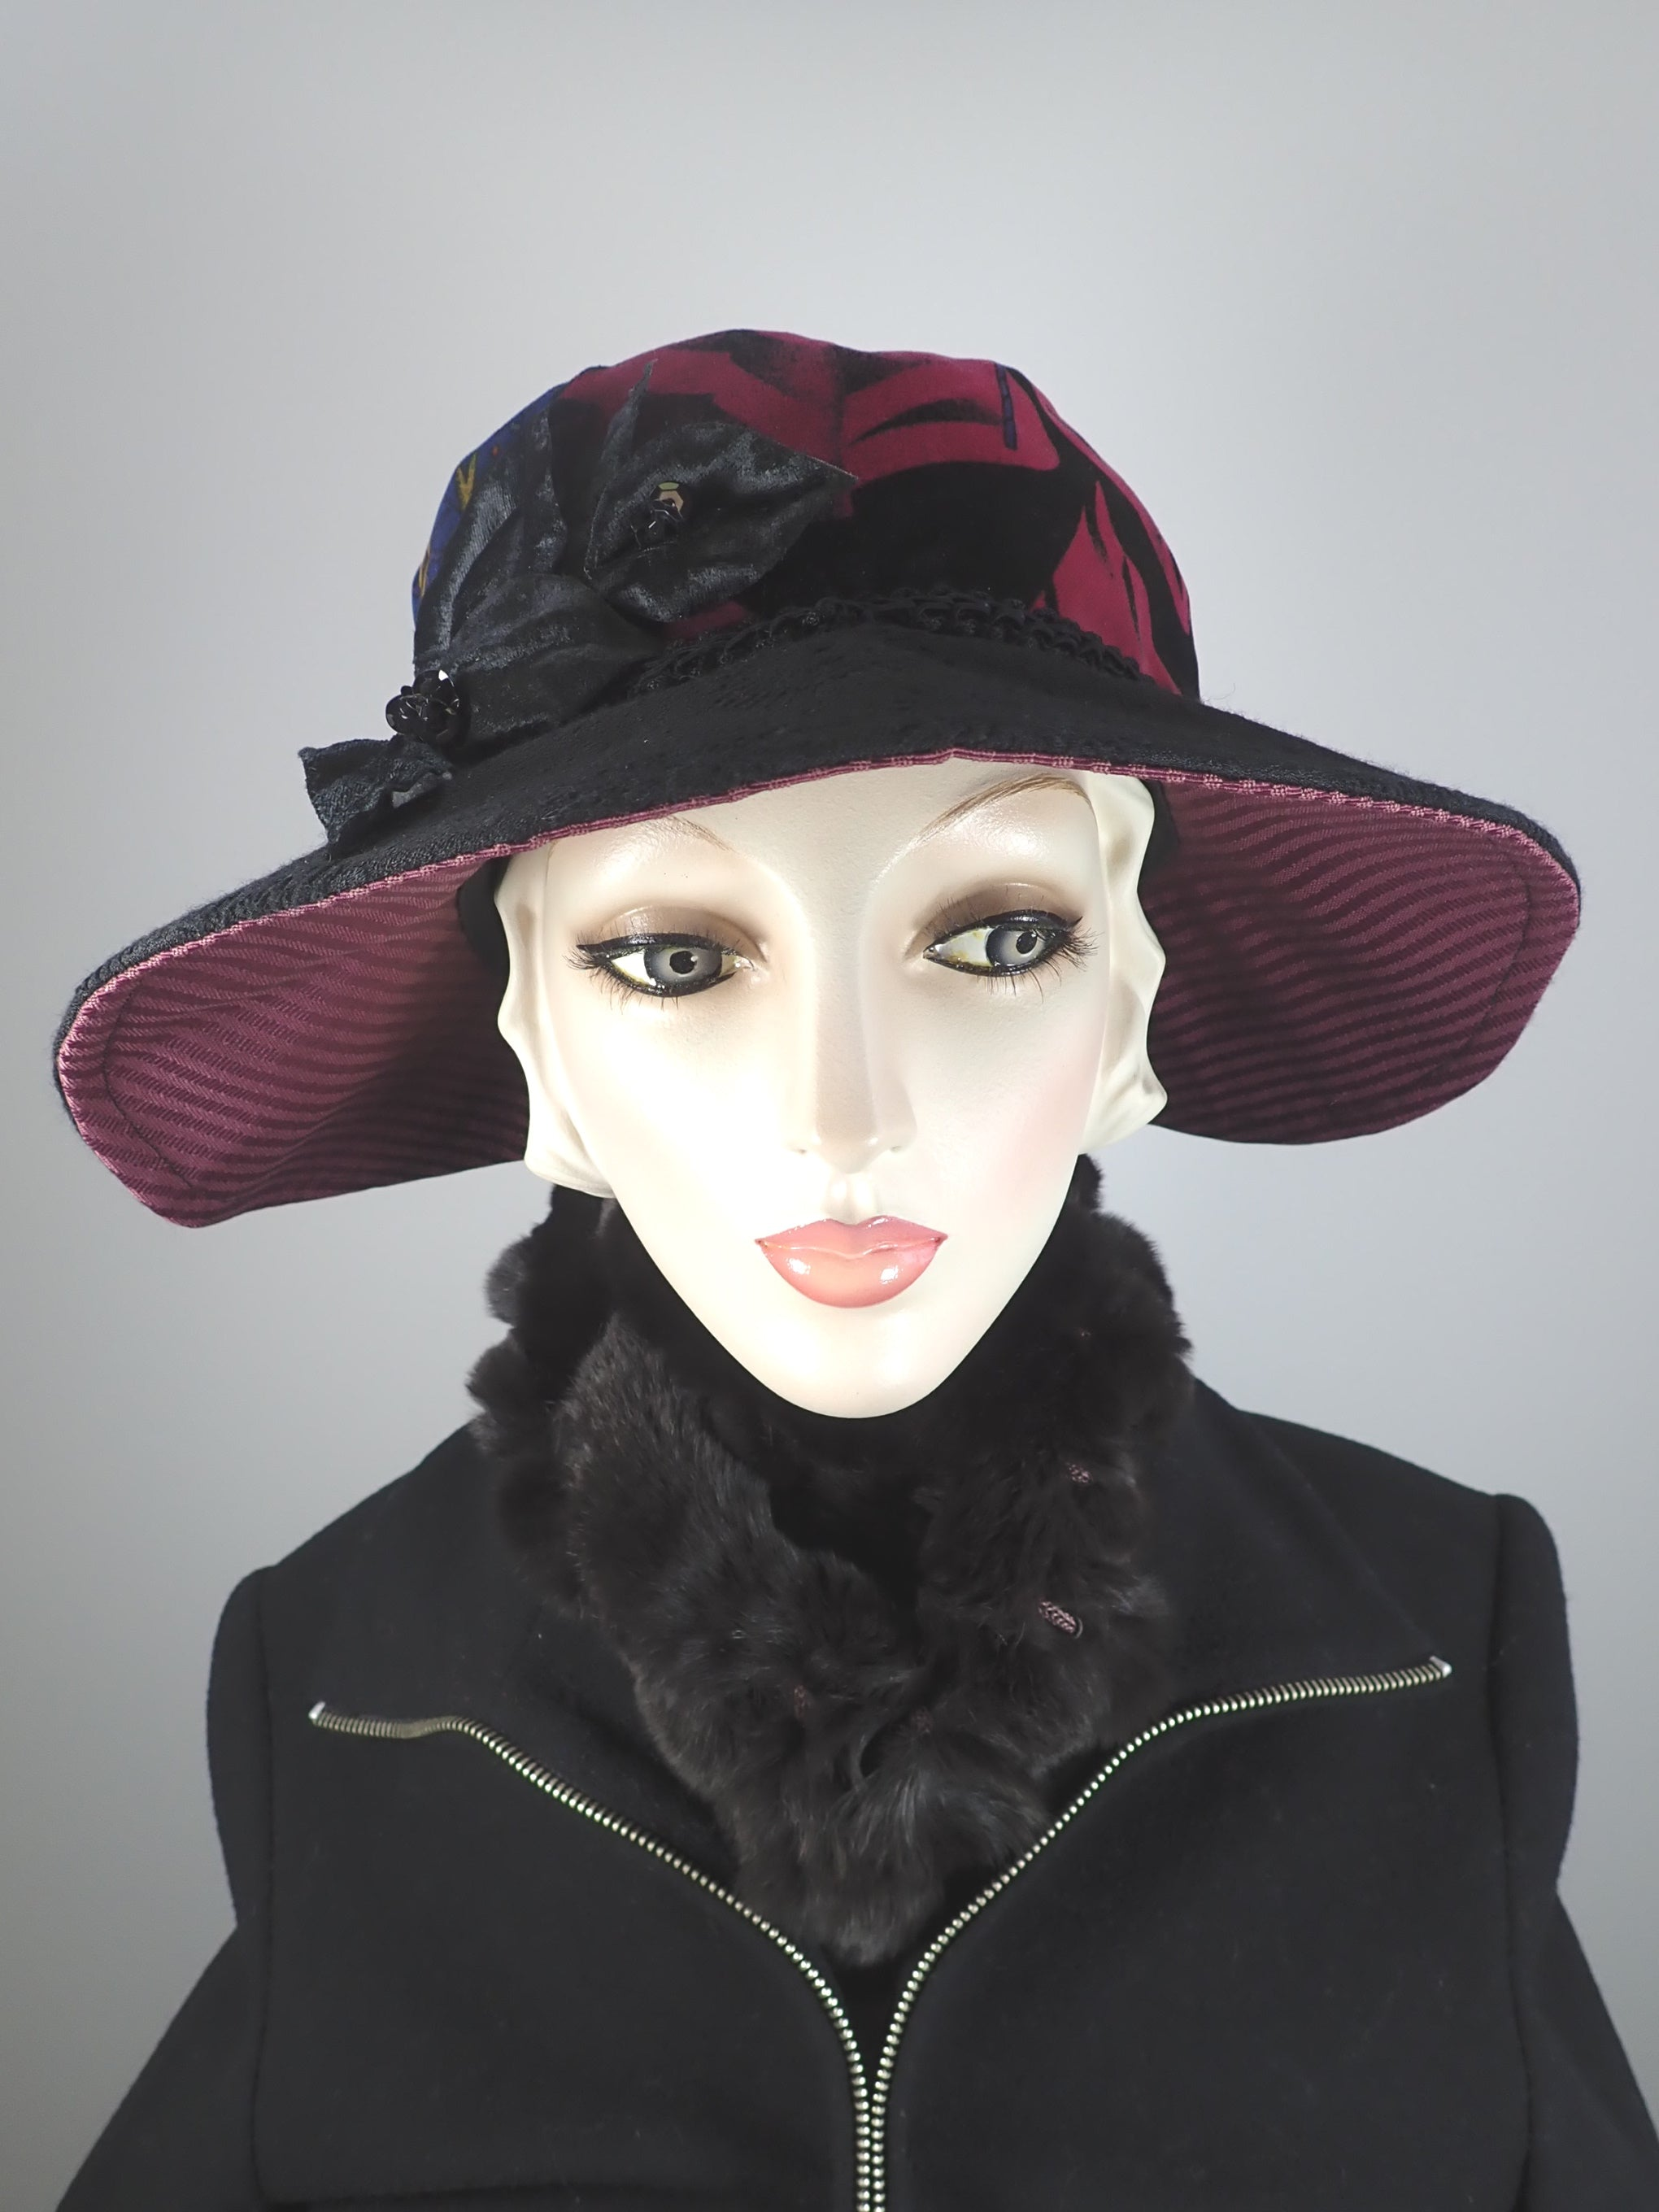 Velvet and wool slow fashion downton abbey medium brim hat black and burgundy